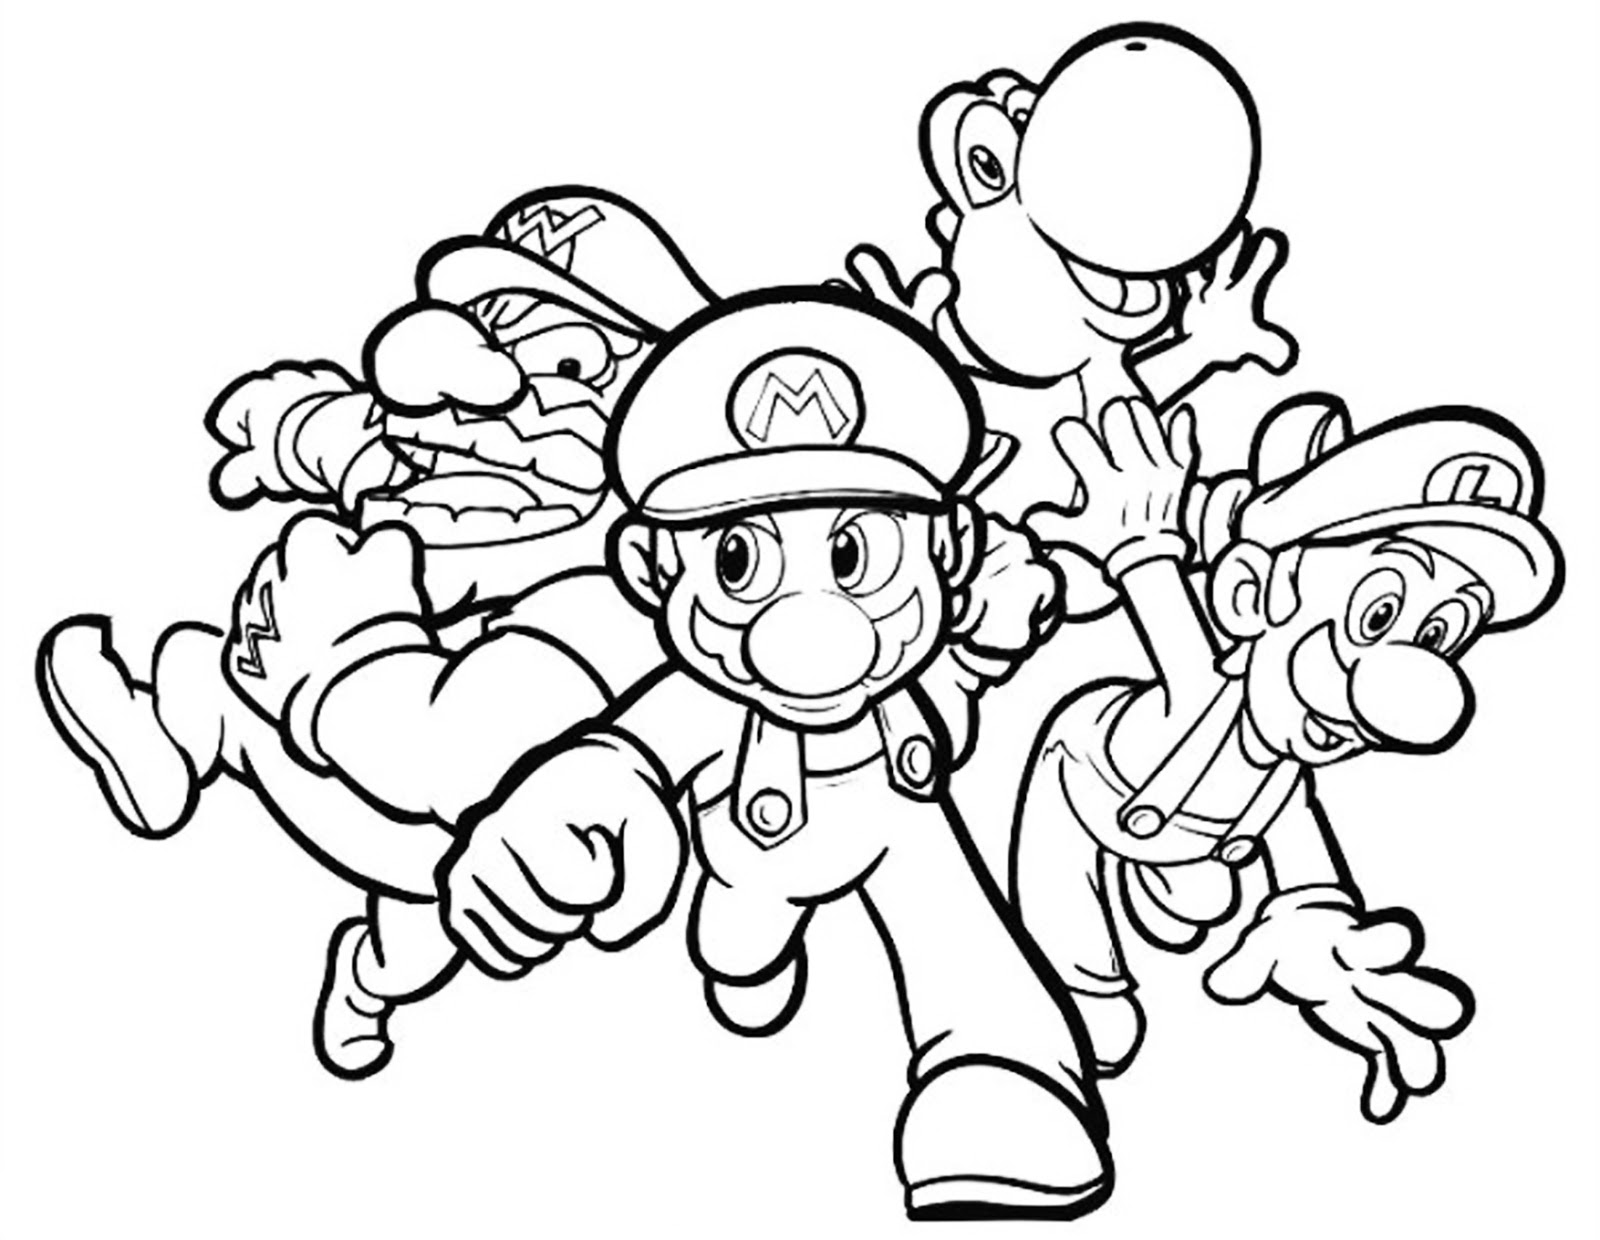 Click And Print To A4 Colouring Page